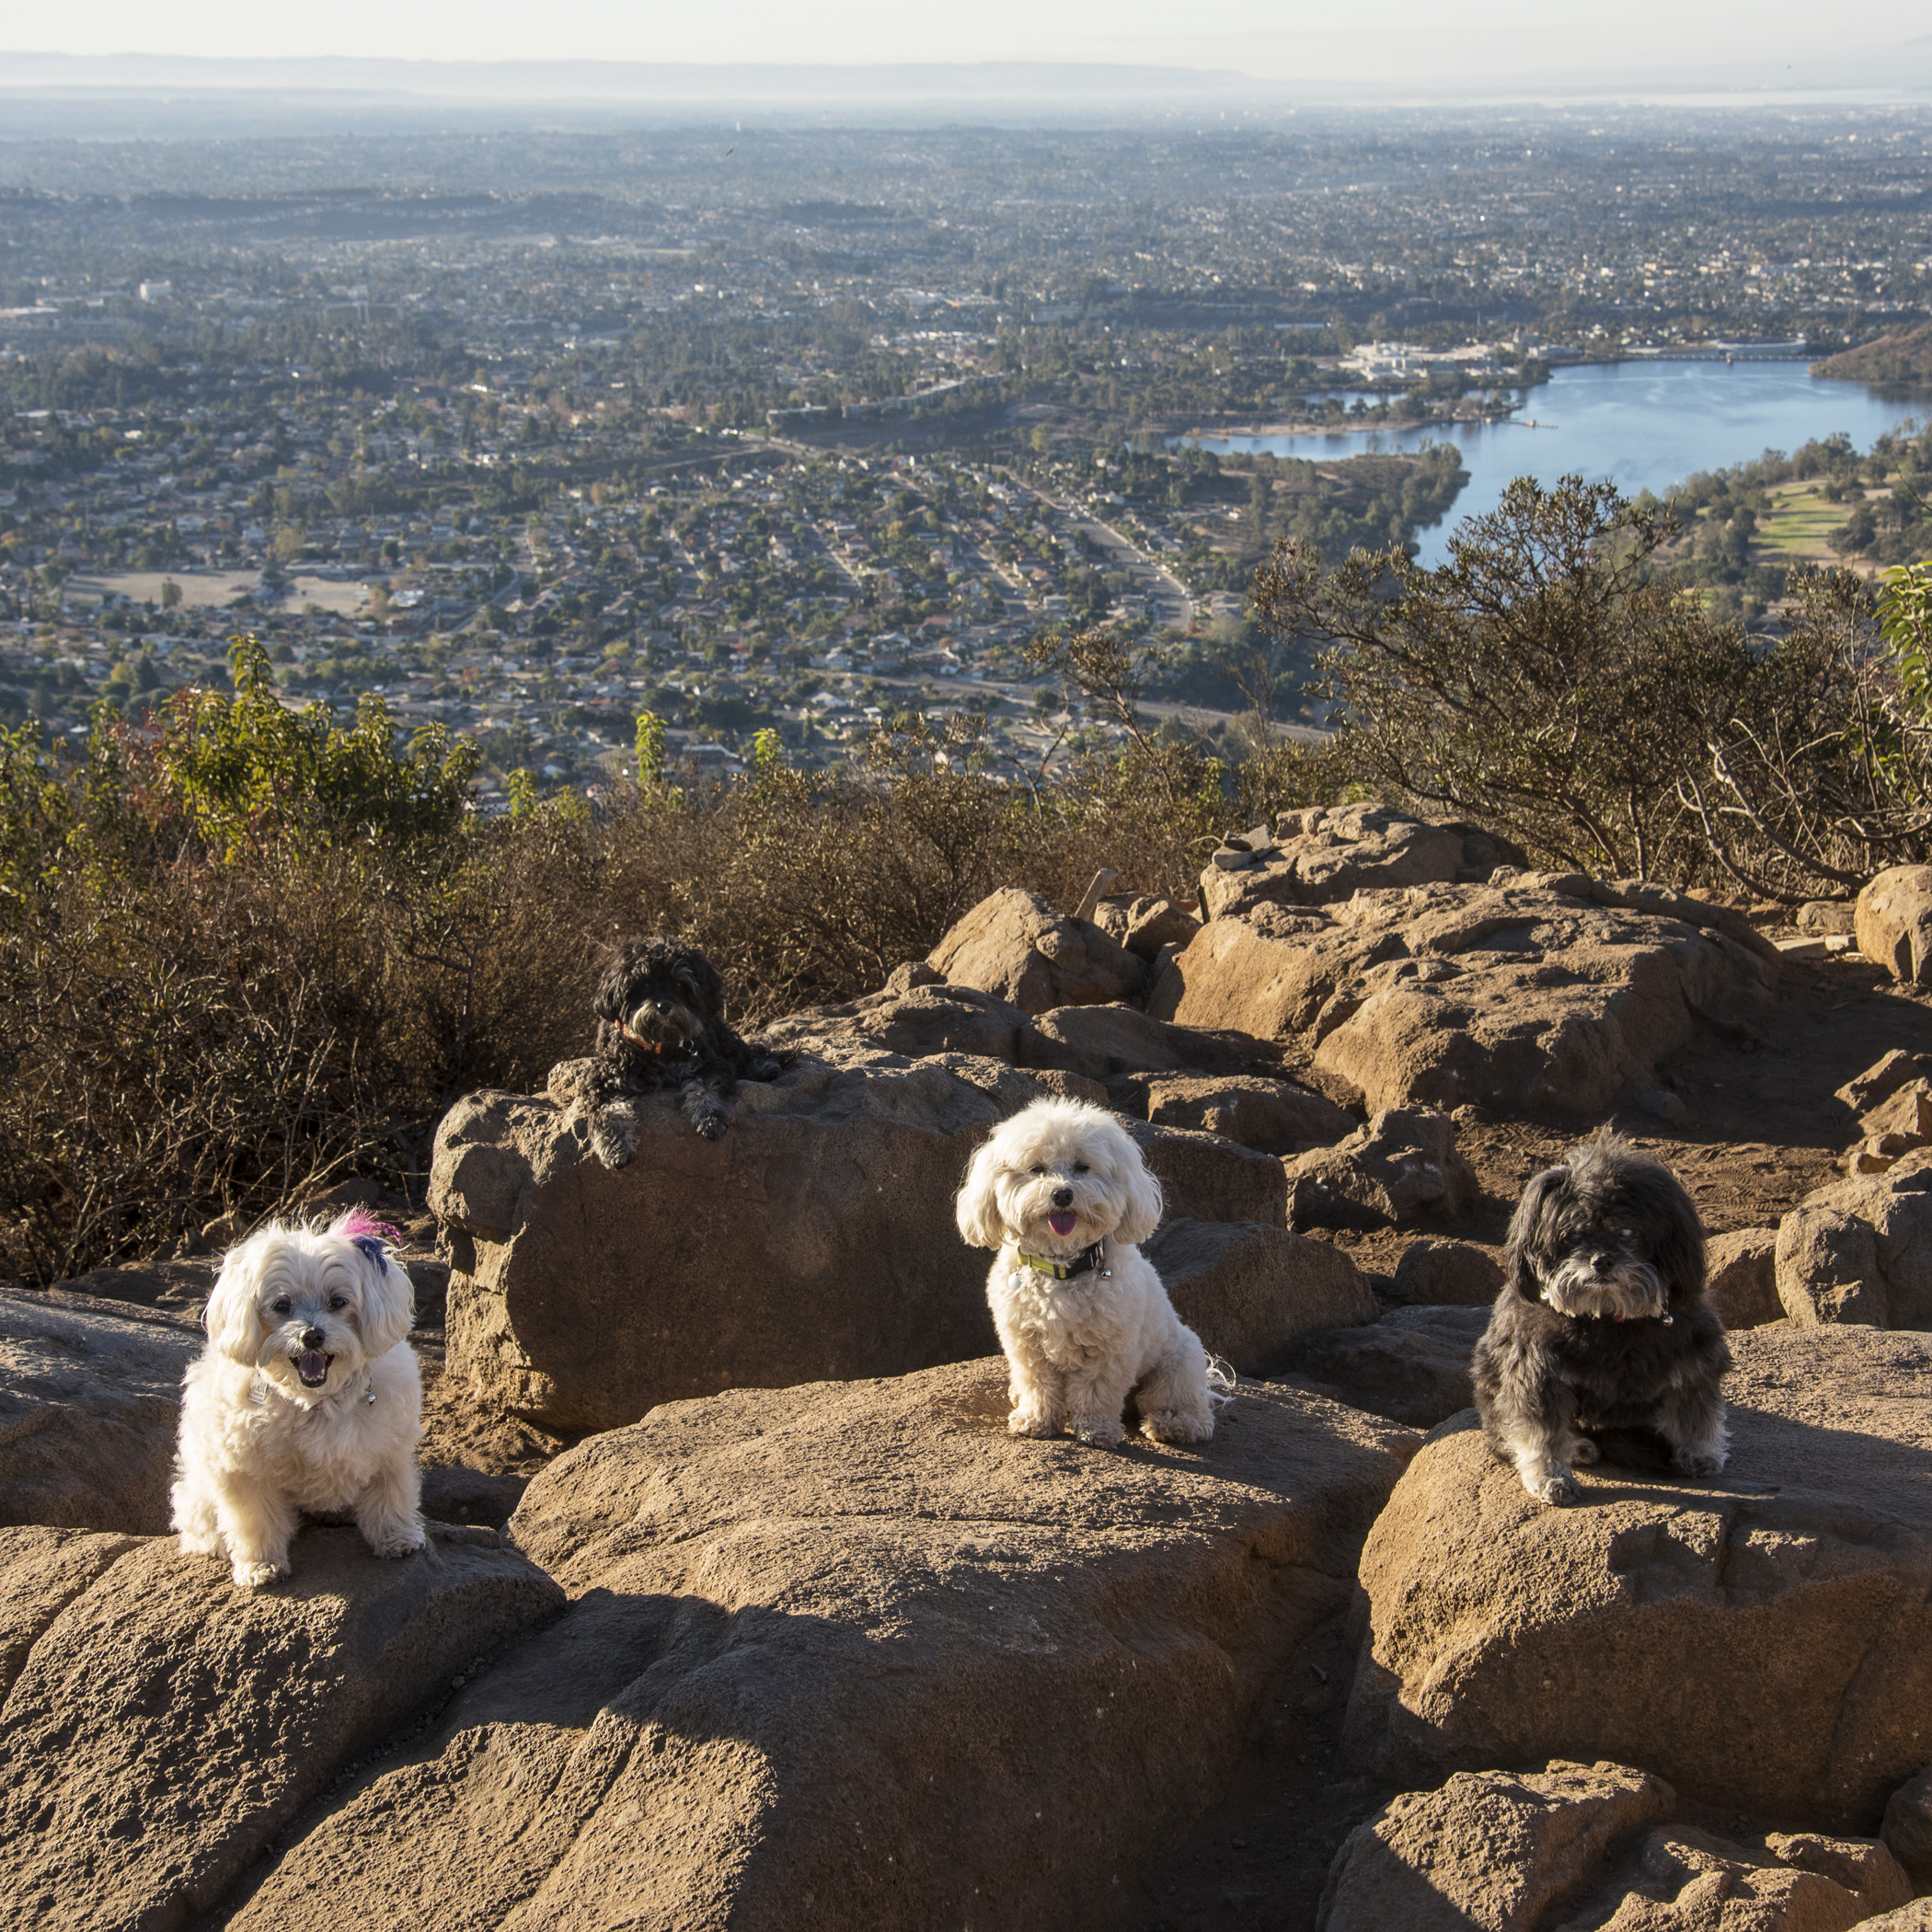 No adventure would ever be complete without a mountain hike! Whew, it was a steep one, but we made it to the top of Cowles Mountain. Everyone we passed was so impressed by our athletic toughness!